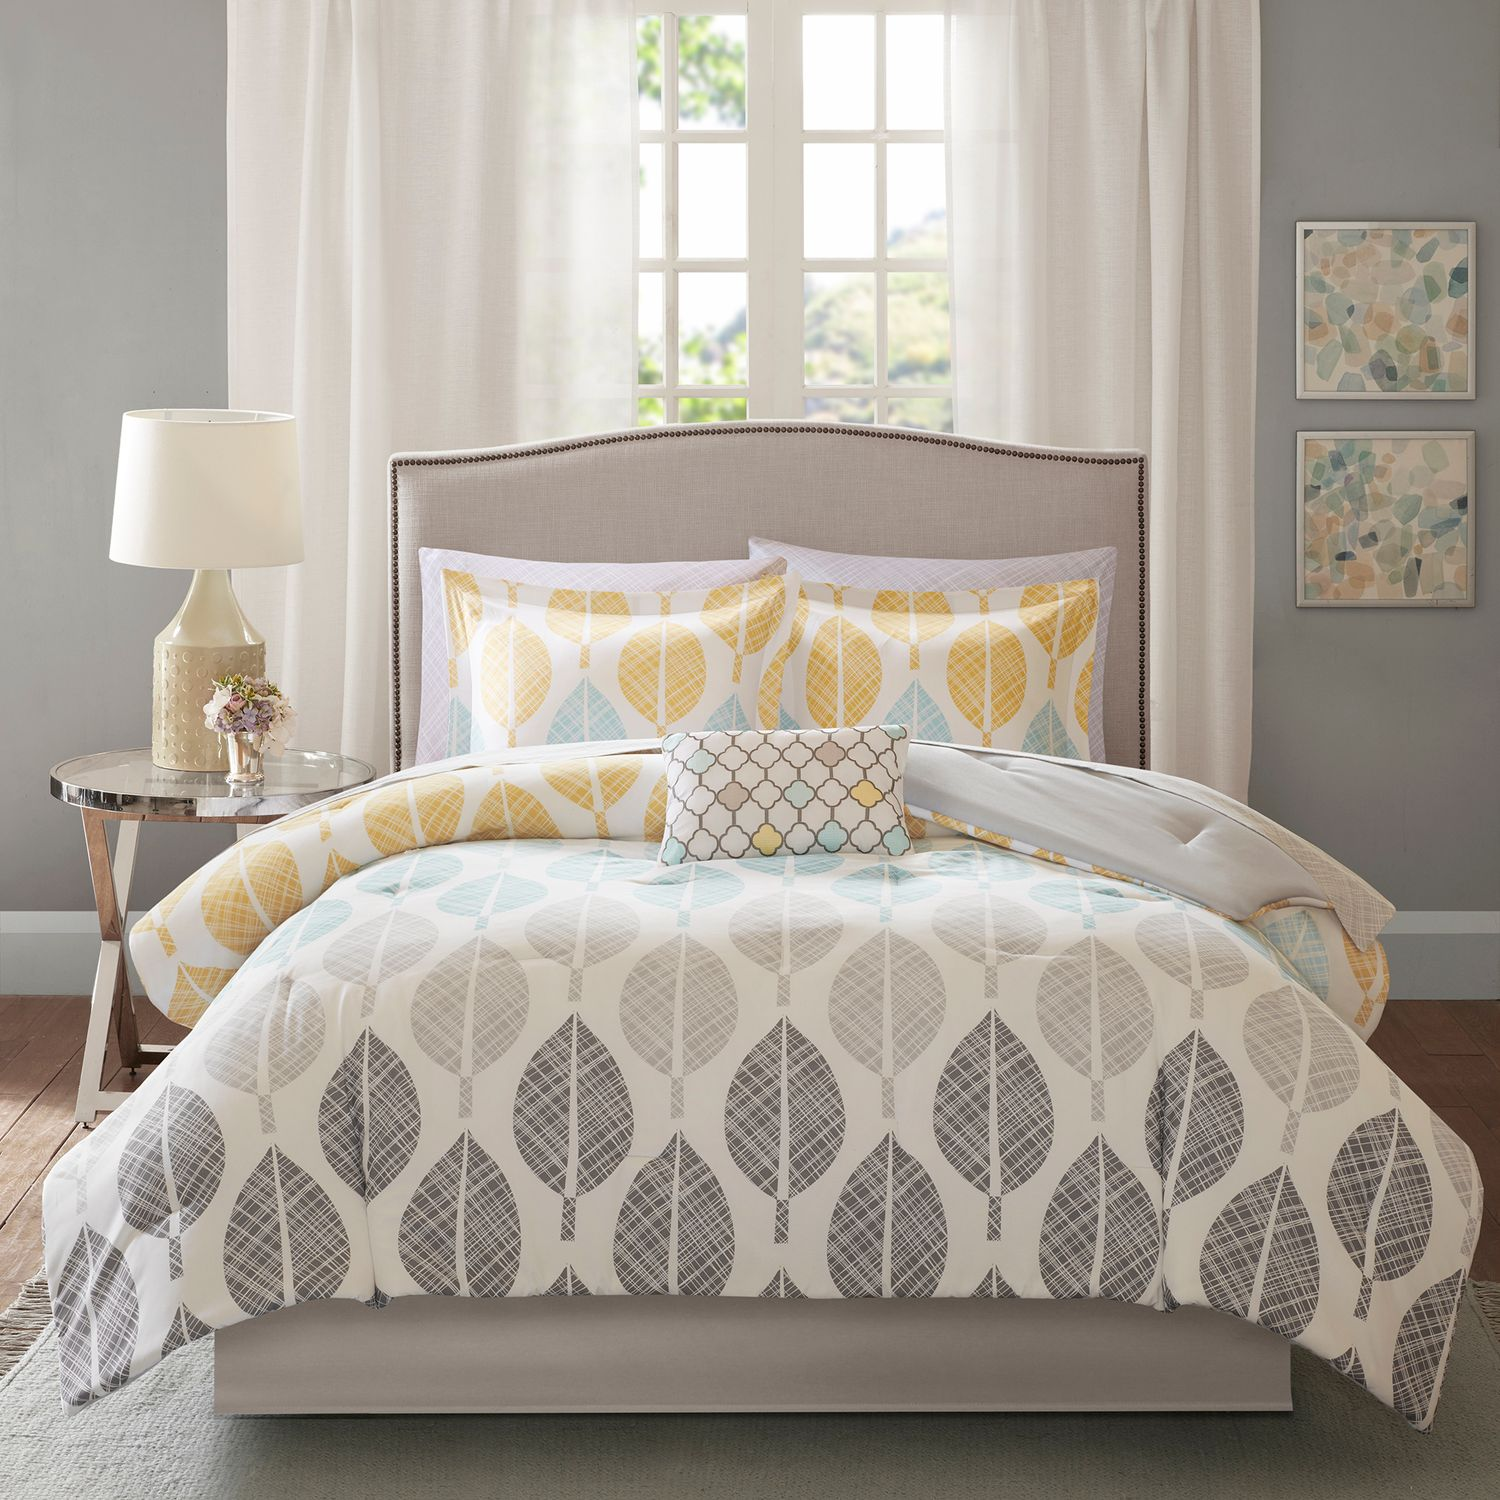 Yellow gray bedding Better Homes Madison Park Essentials Pelham Bay Comforter Set Coral Yellow Kohls Yellow Comforters Bedding Bed Bath Kohls